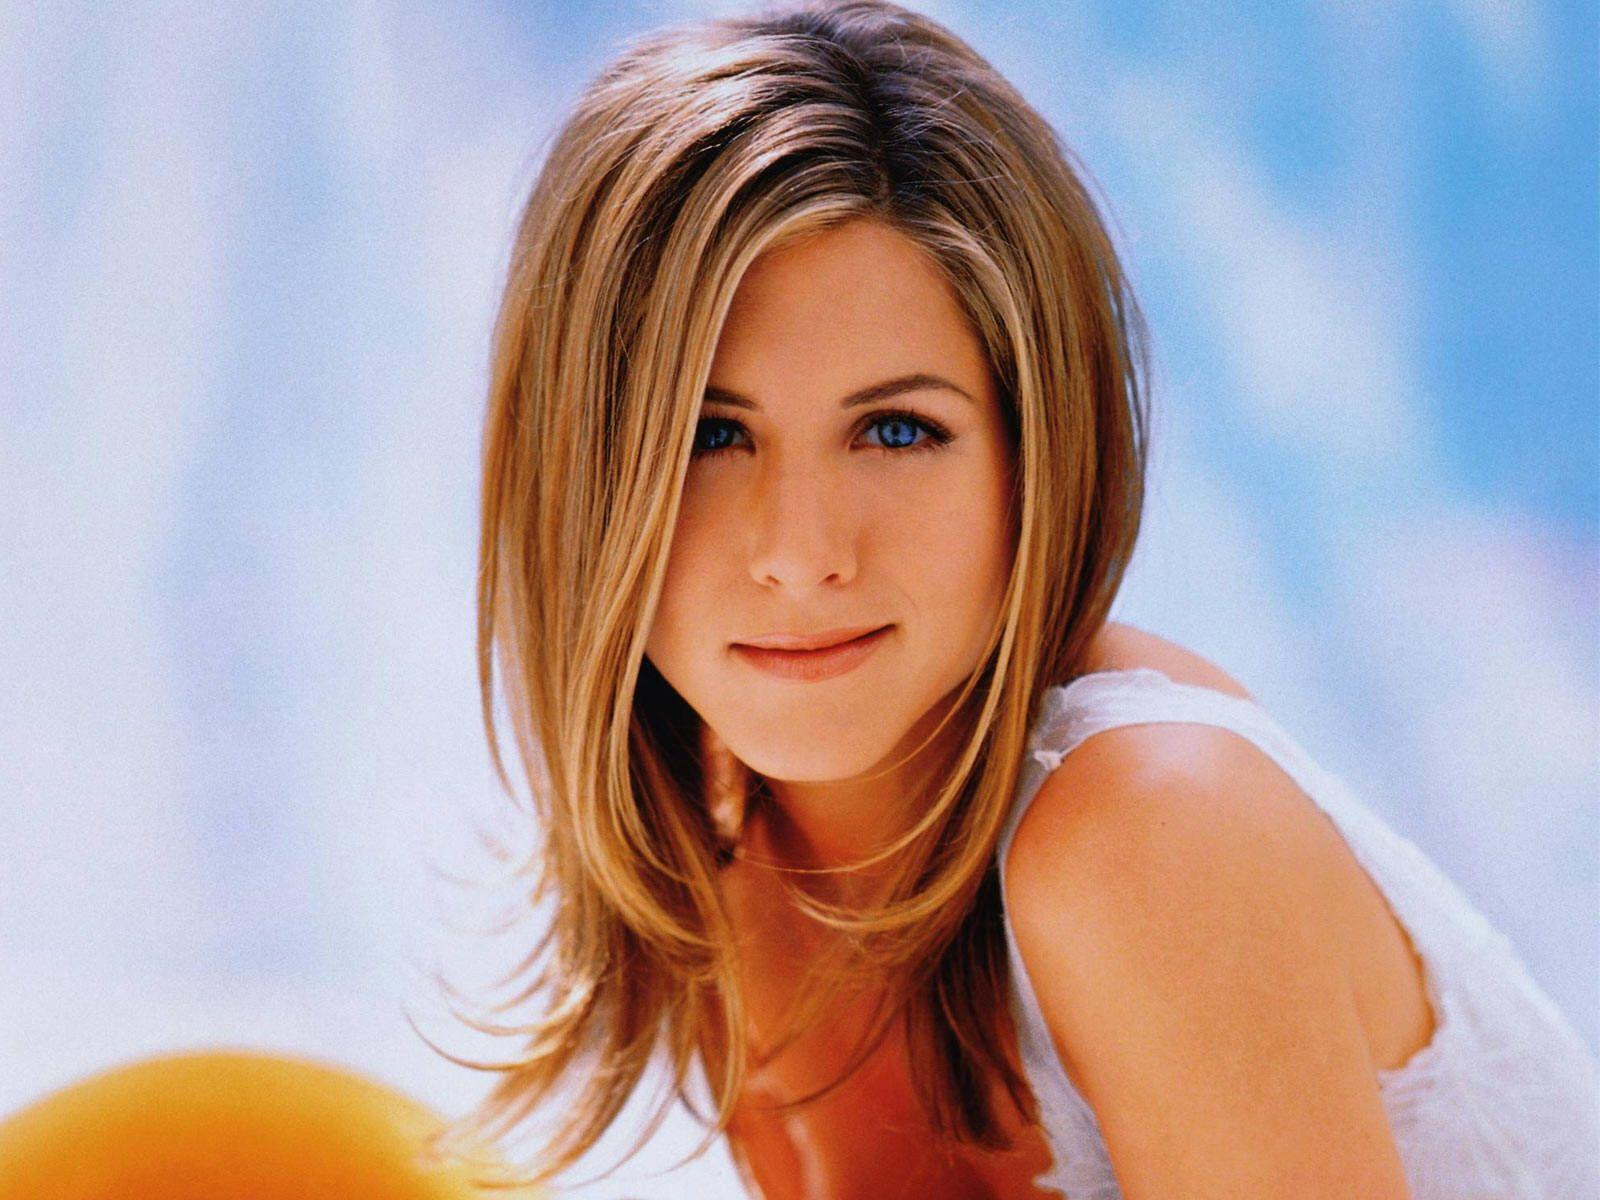 Jennifer Aniston wallpaper | 1600x1200 | #63049